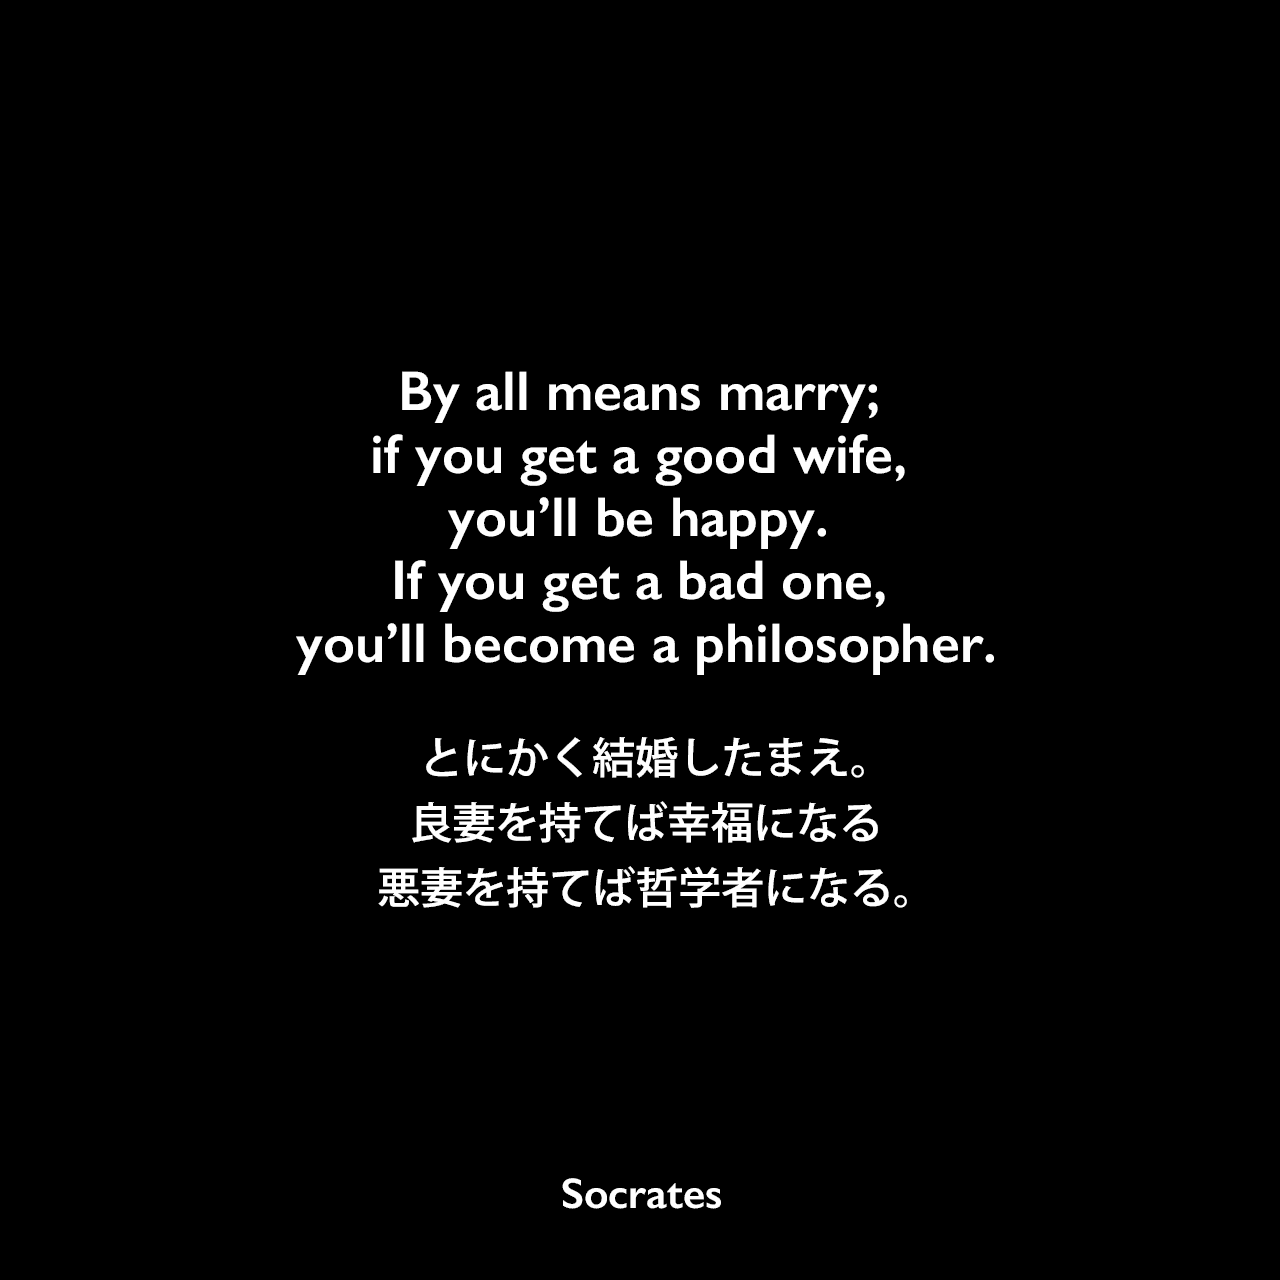 By all means marry; if you get a good wife, you'll be happy. If you get a bad one, you'll become a philosopher.とにかく結婚したまえ。良妻を持てば幸福になる、悪妻を持てば哲学者になる。